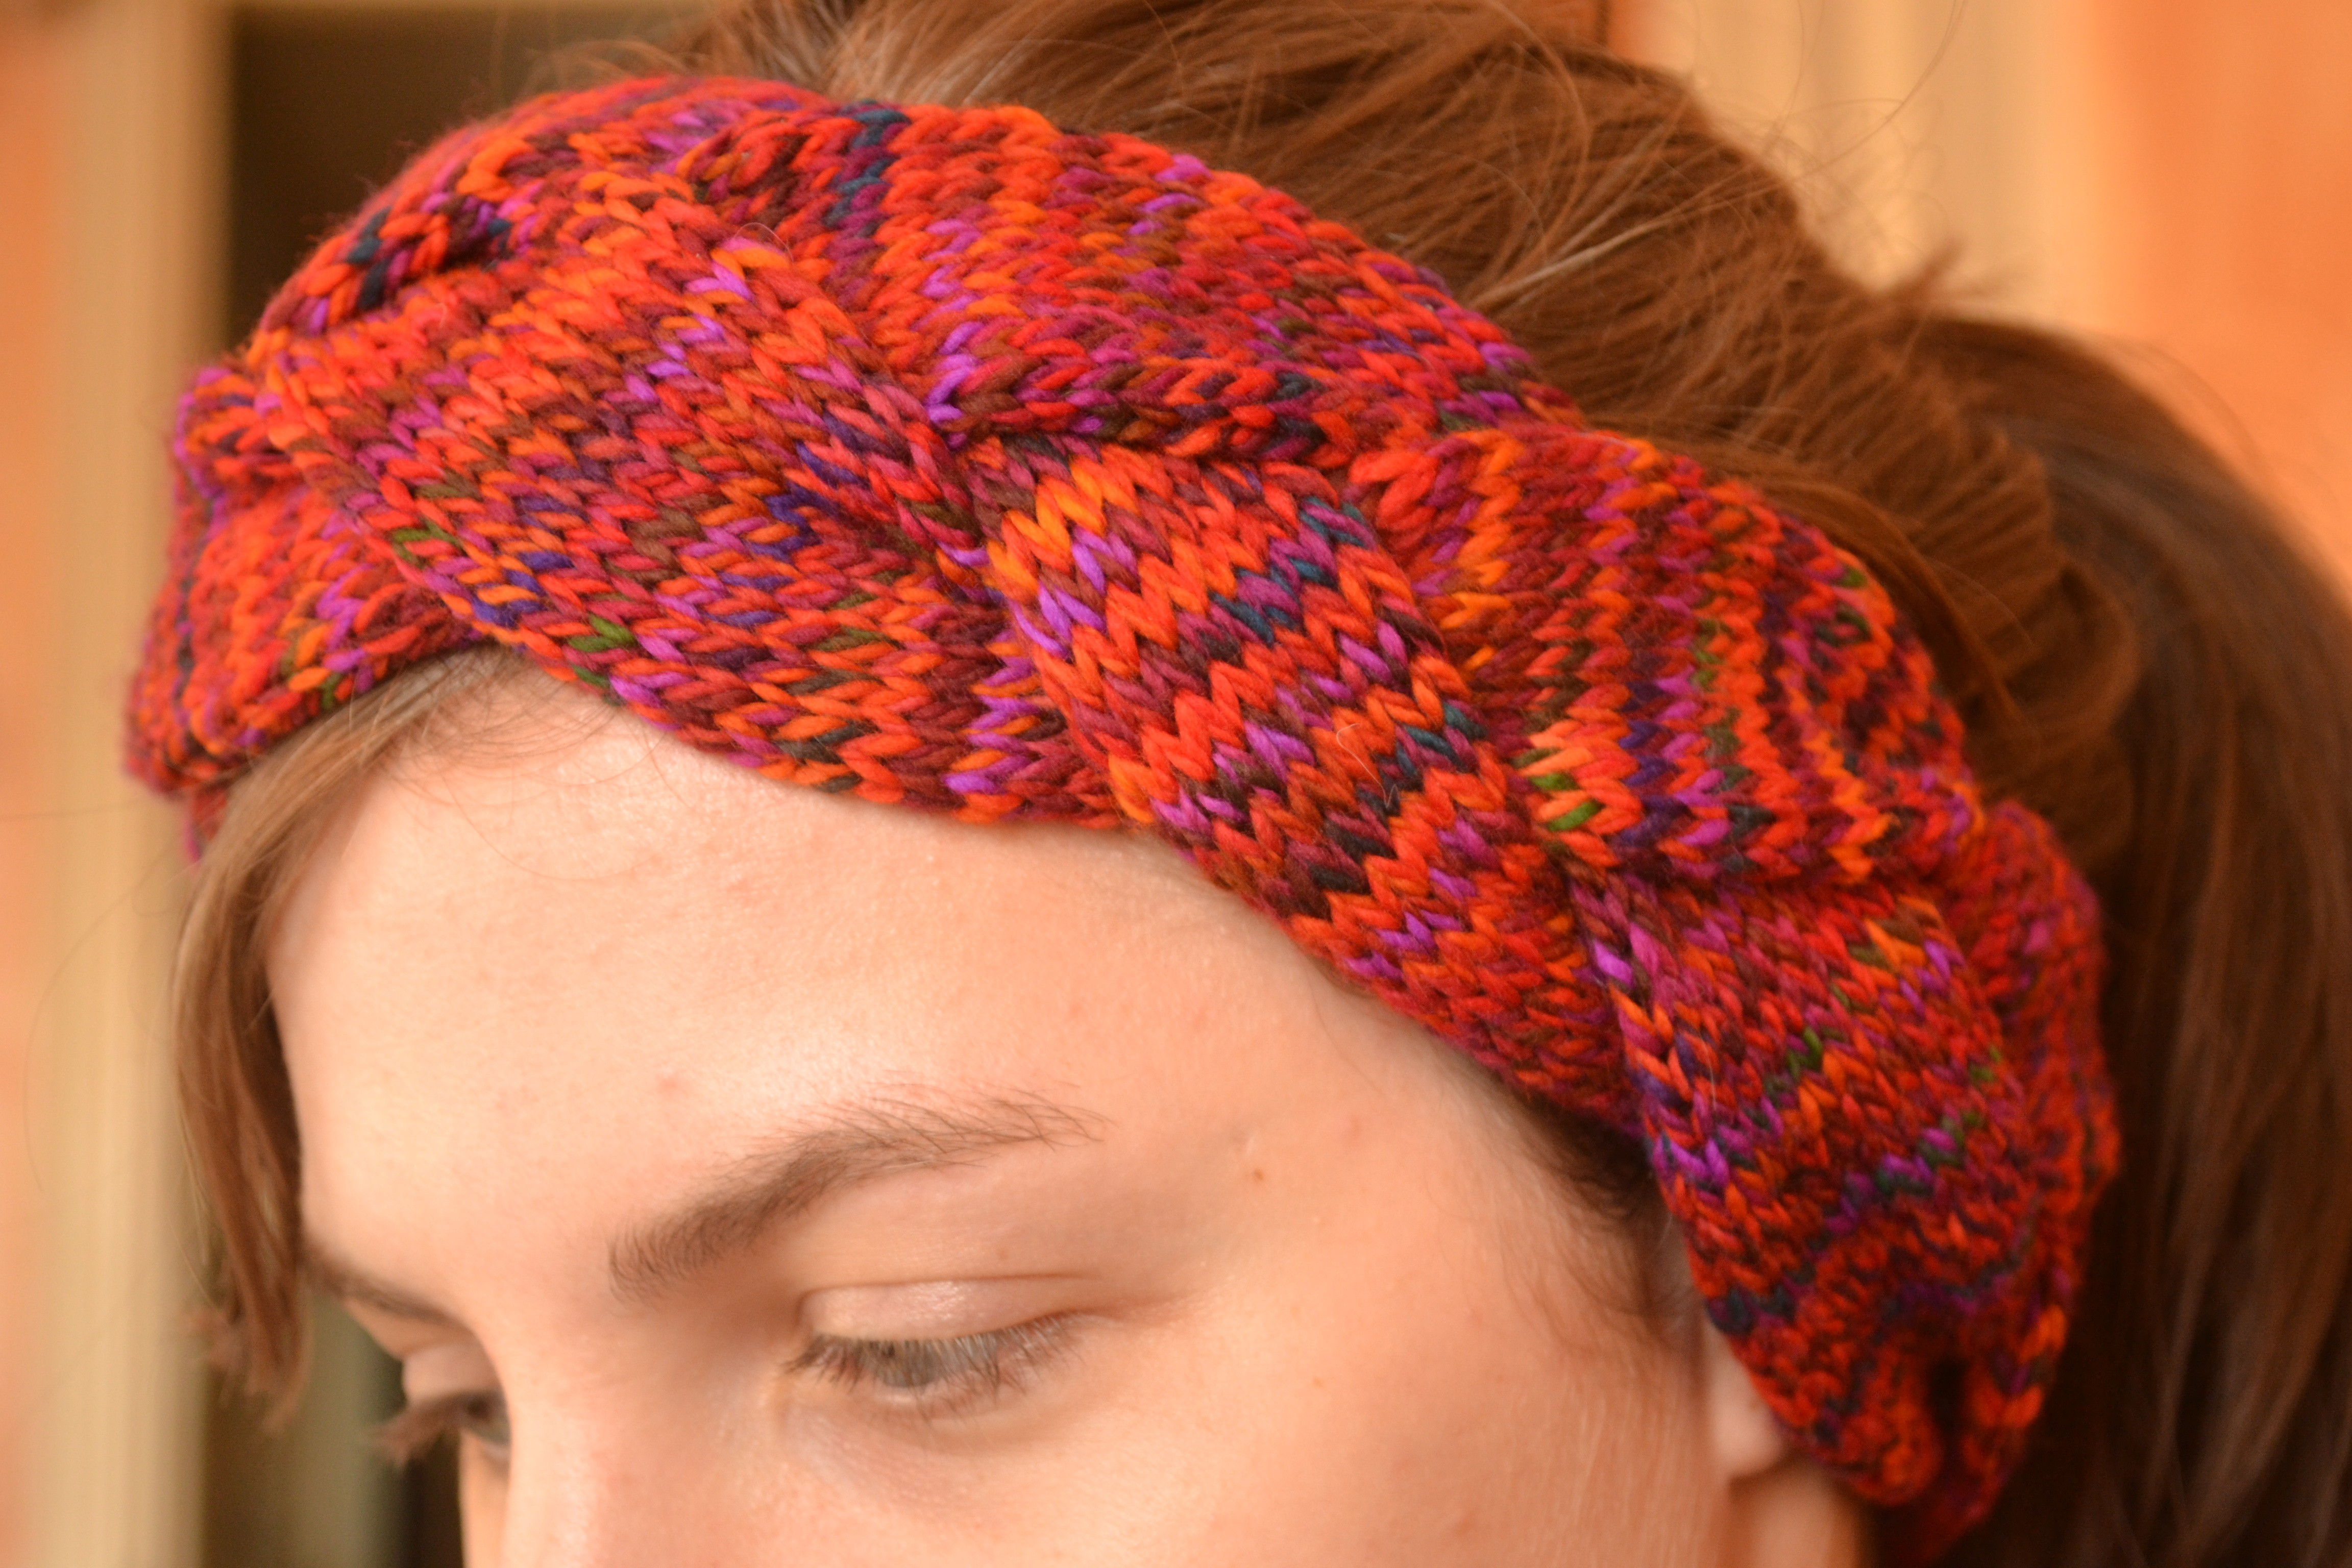 Braided Headband Knitting Pattern